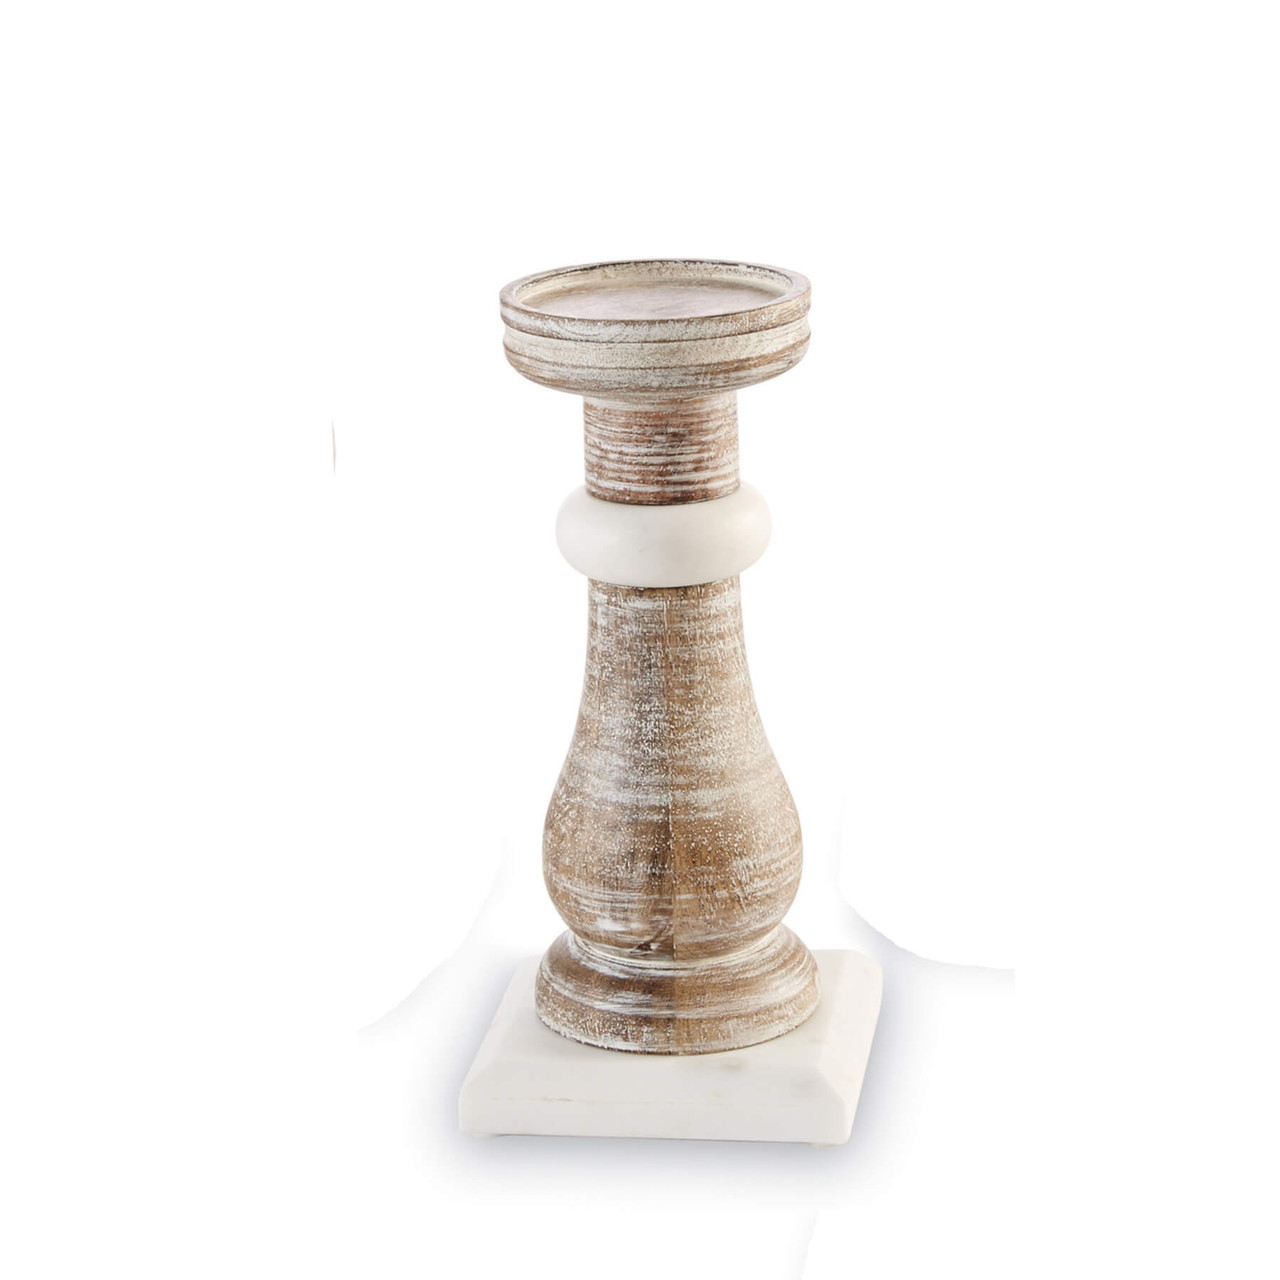 """Hand-turned 9.5"""" Mango wood candleholder features 4.5"""" square white marble accents and base."""